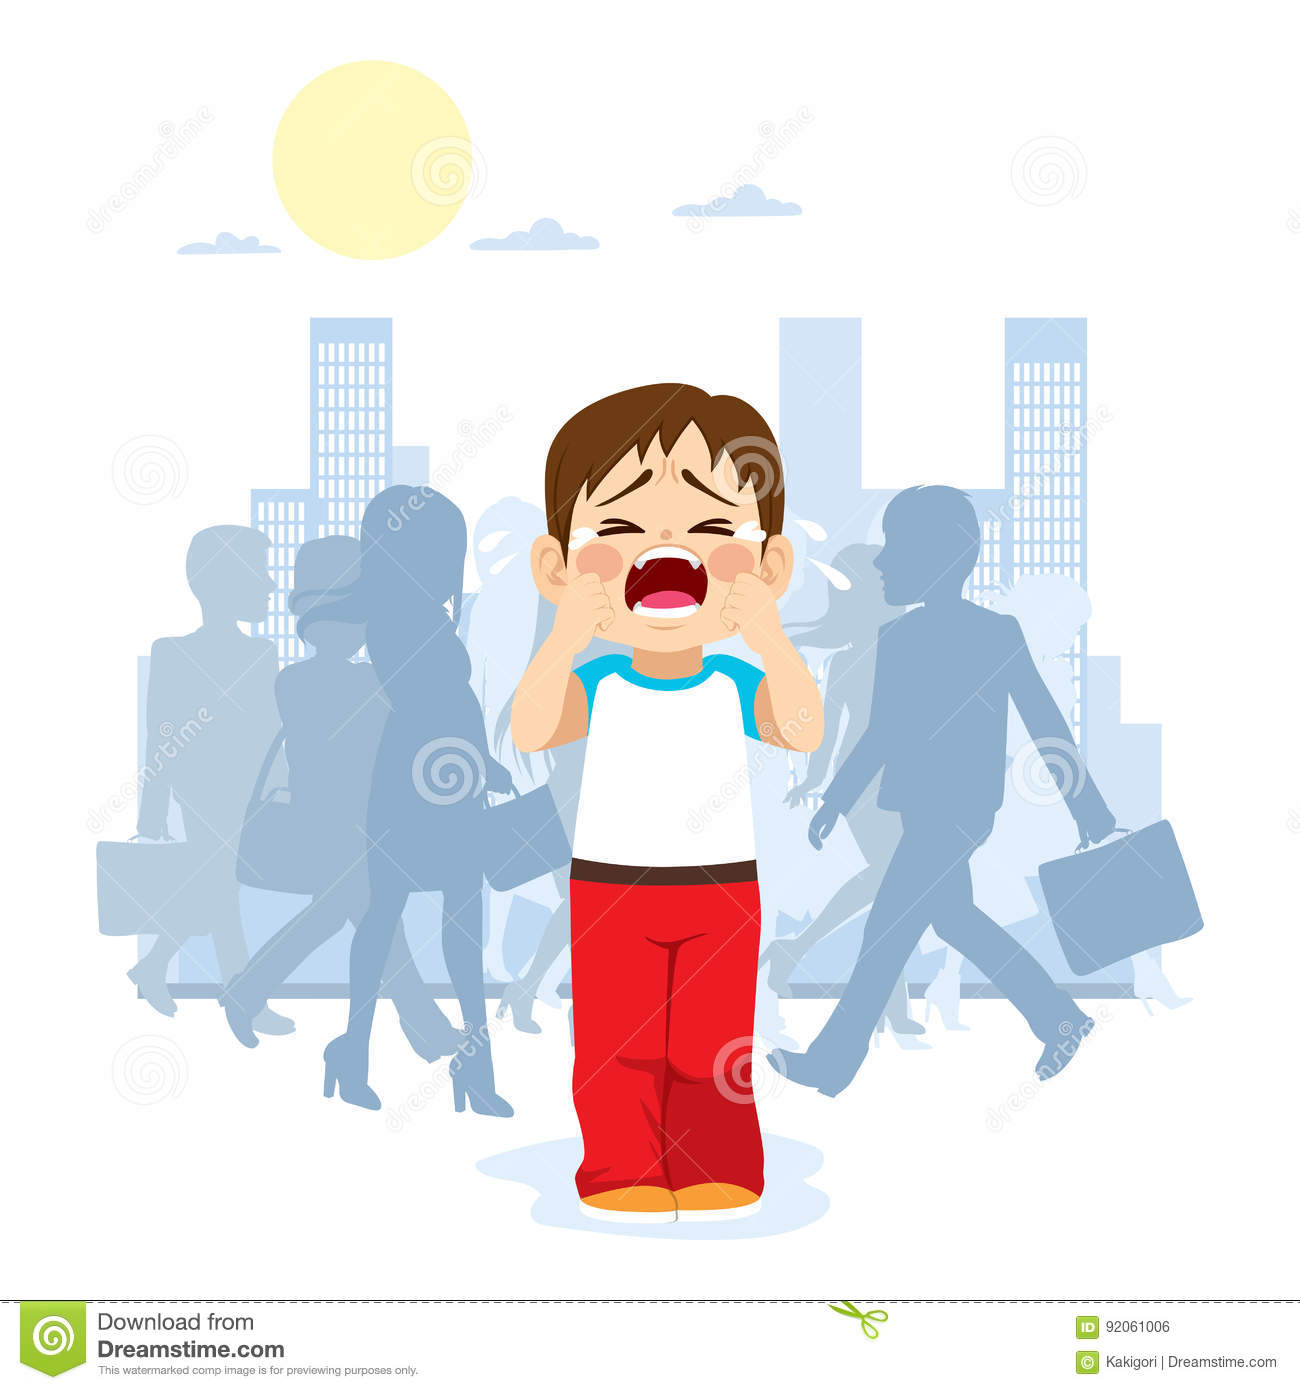 Lonely Crowd People Cartoon